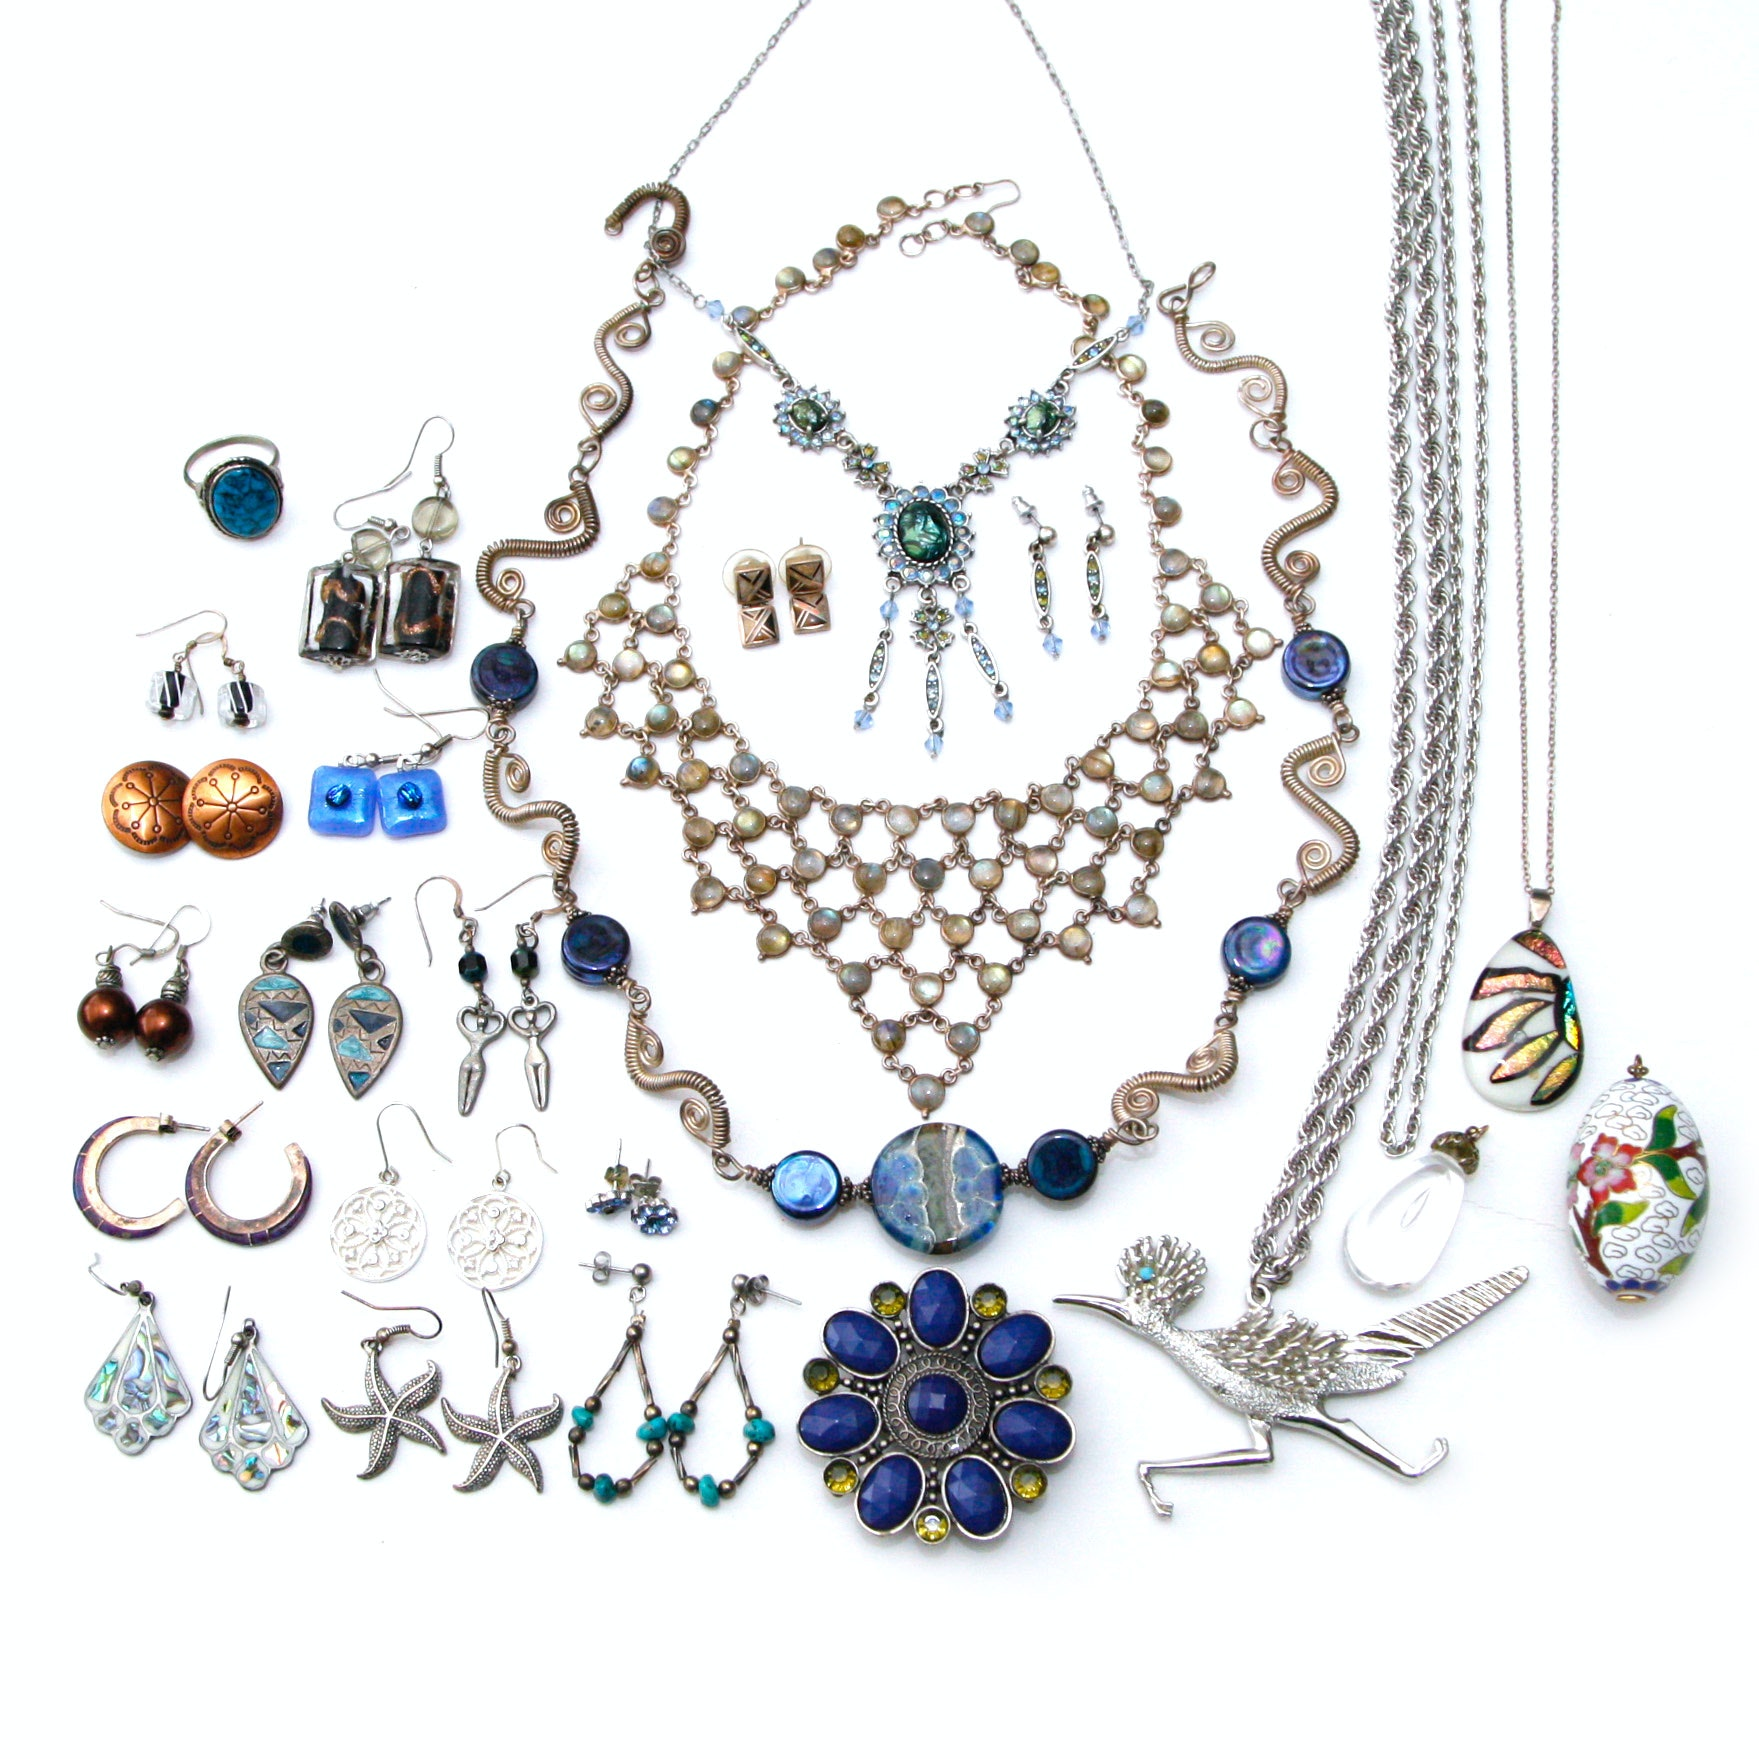 Coordinating Costume Jewelry Group